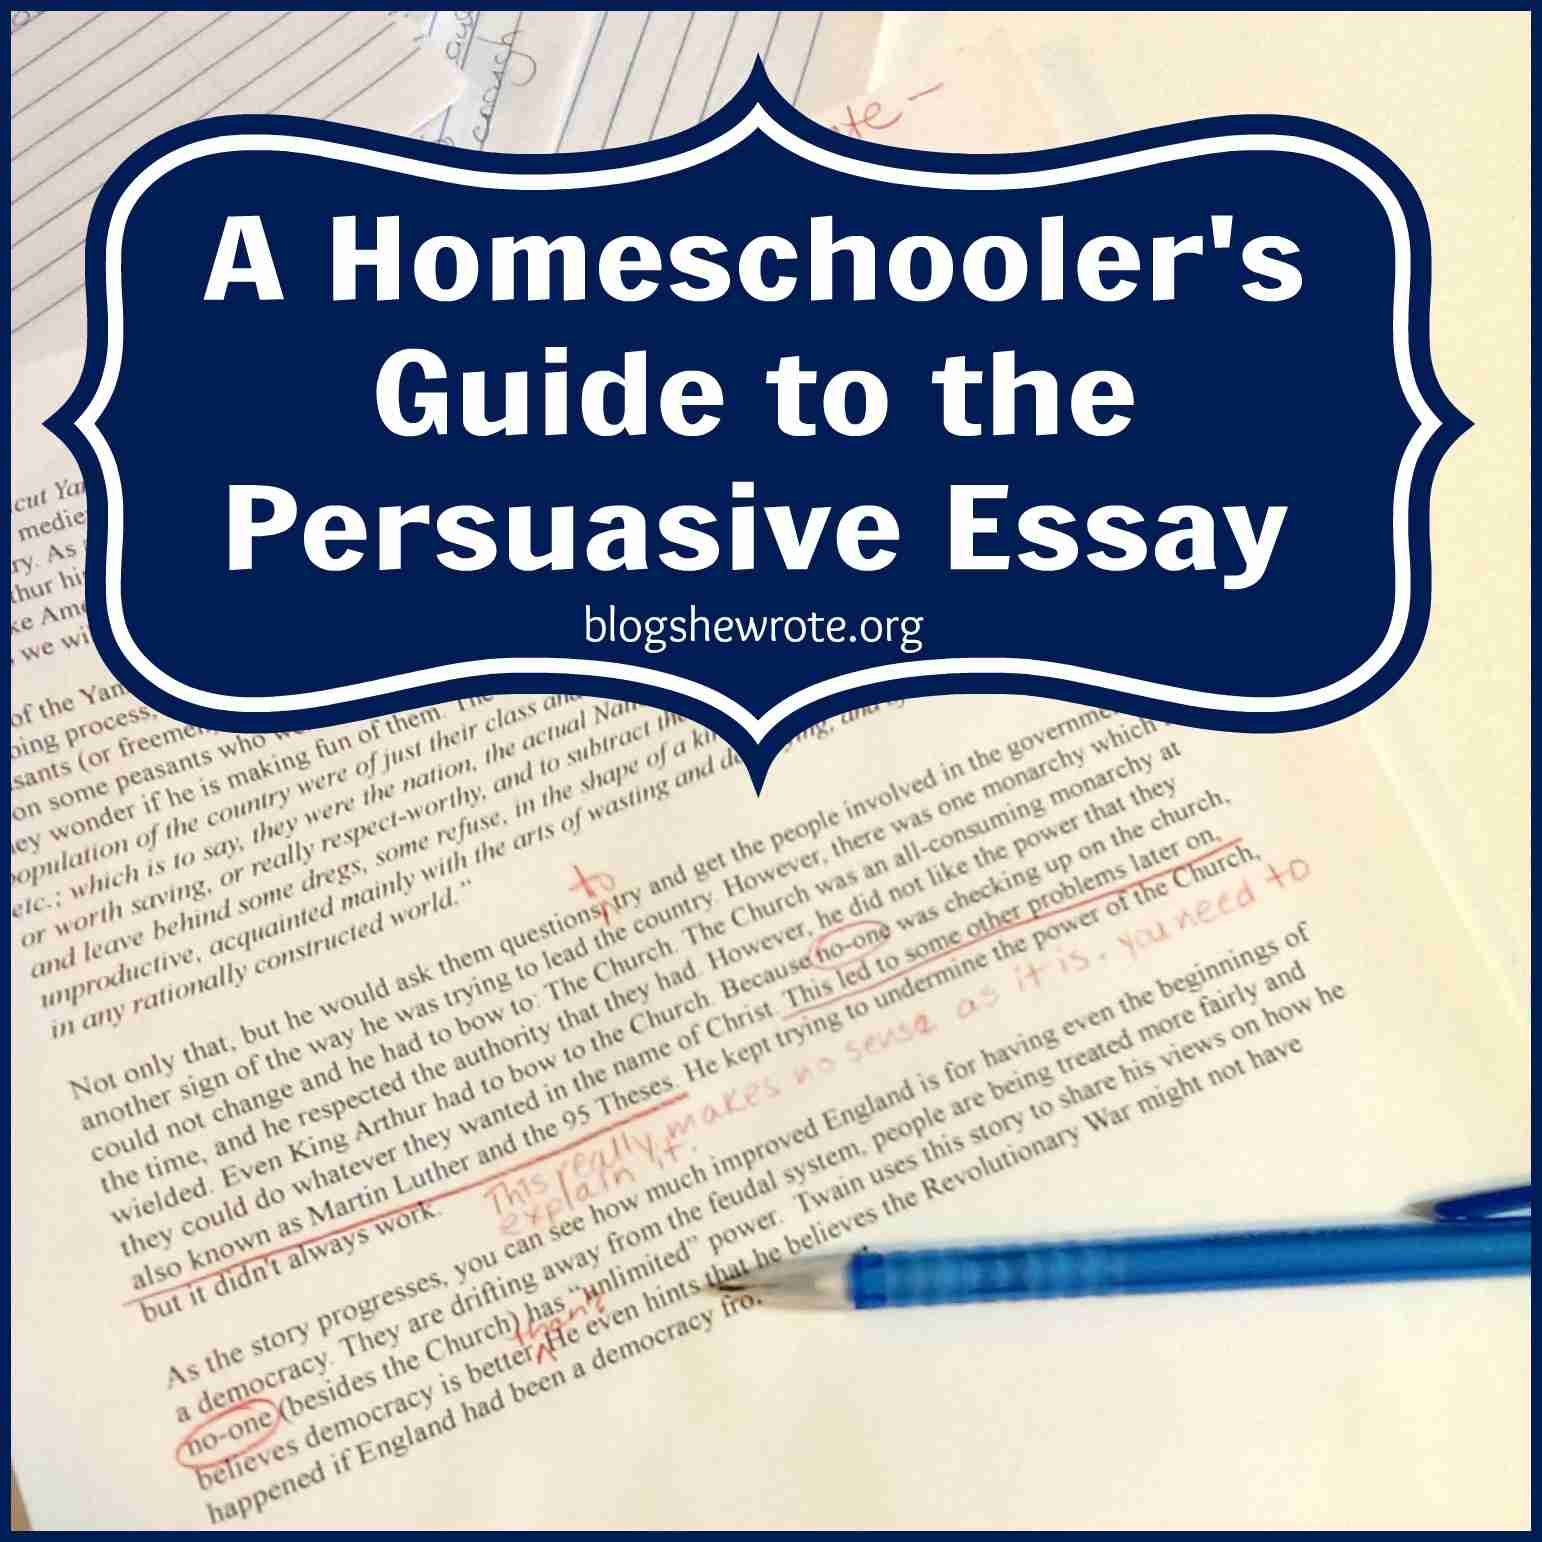 Self Reliance Essay Summary A Homeschoolers Guide To The Persuasive Essay The Kite Runner Essay Thesis also Essays Against School Uniforms A Homeschoolers Guide To The Persuasive Essay  Blog She Wrote Harry Potter Essays